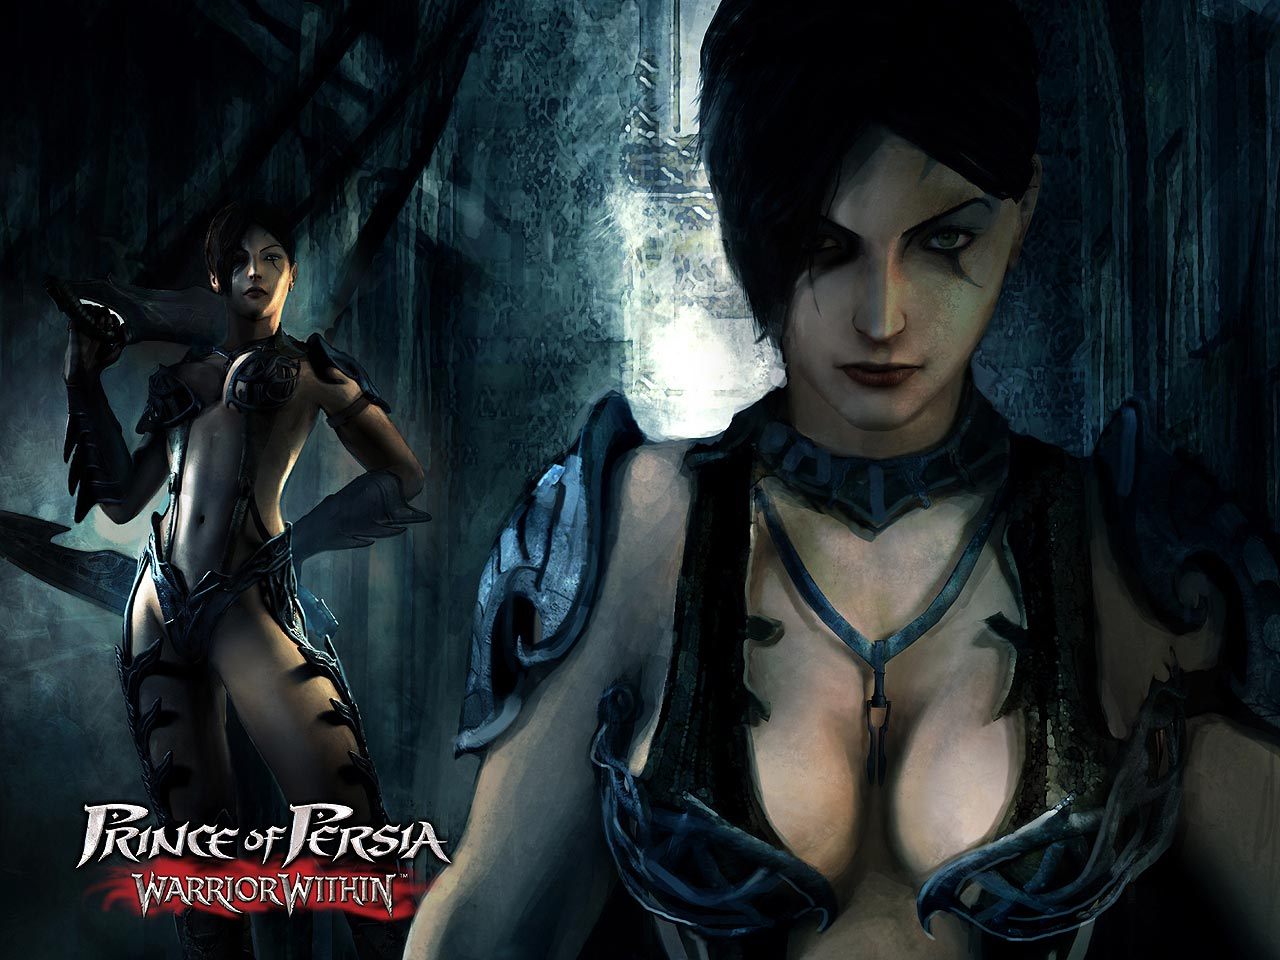 w04-1280.jpg - Prince of Persia: The Two Thrones